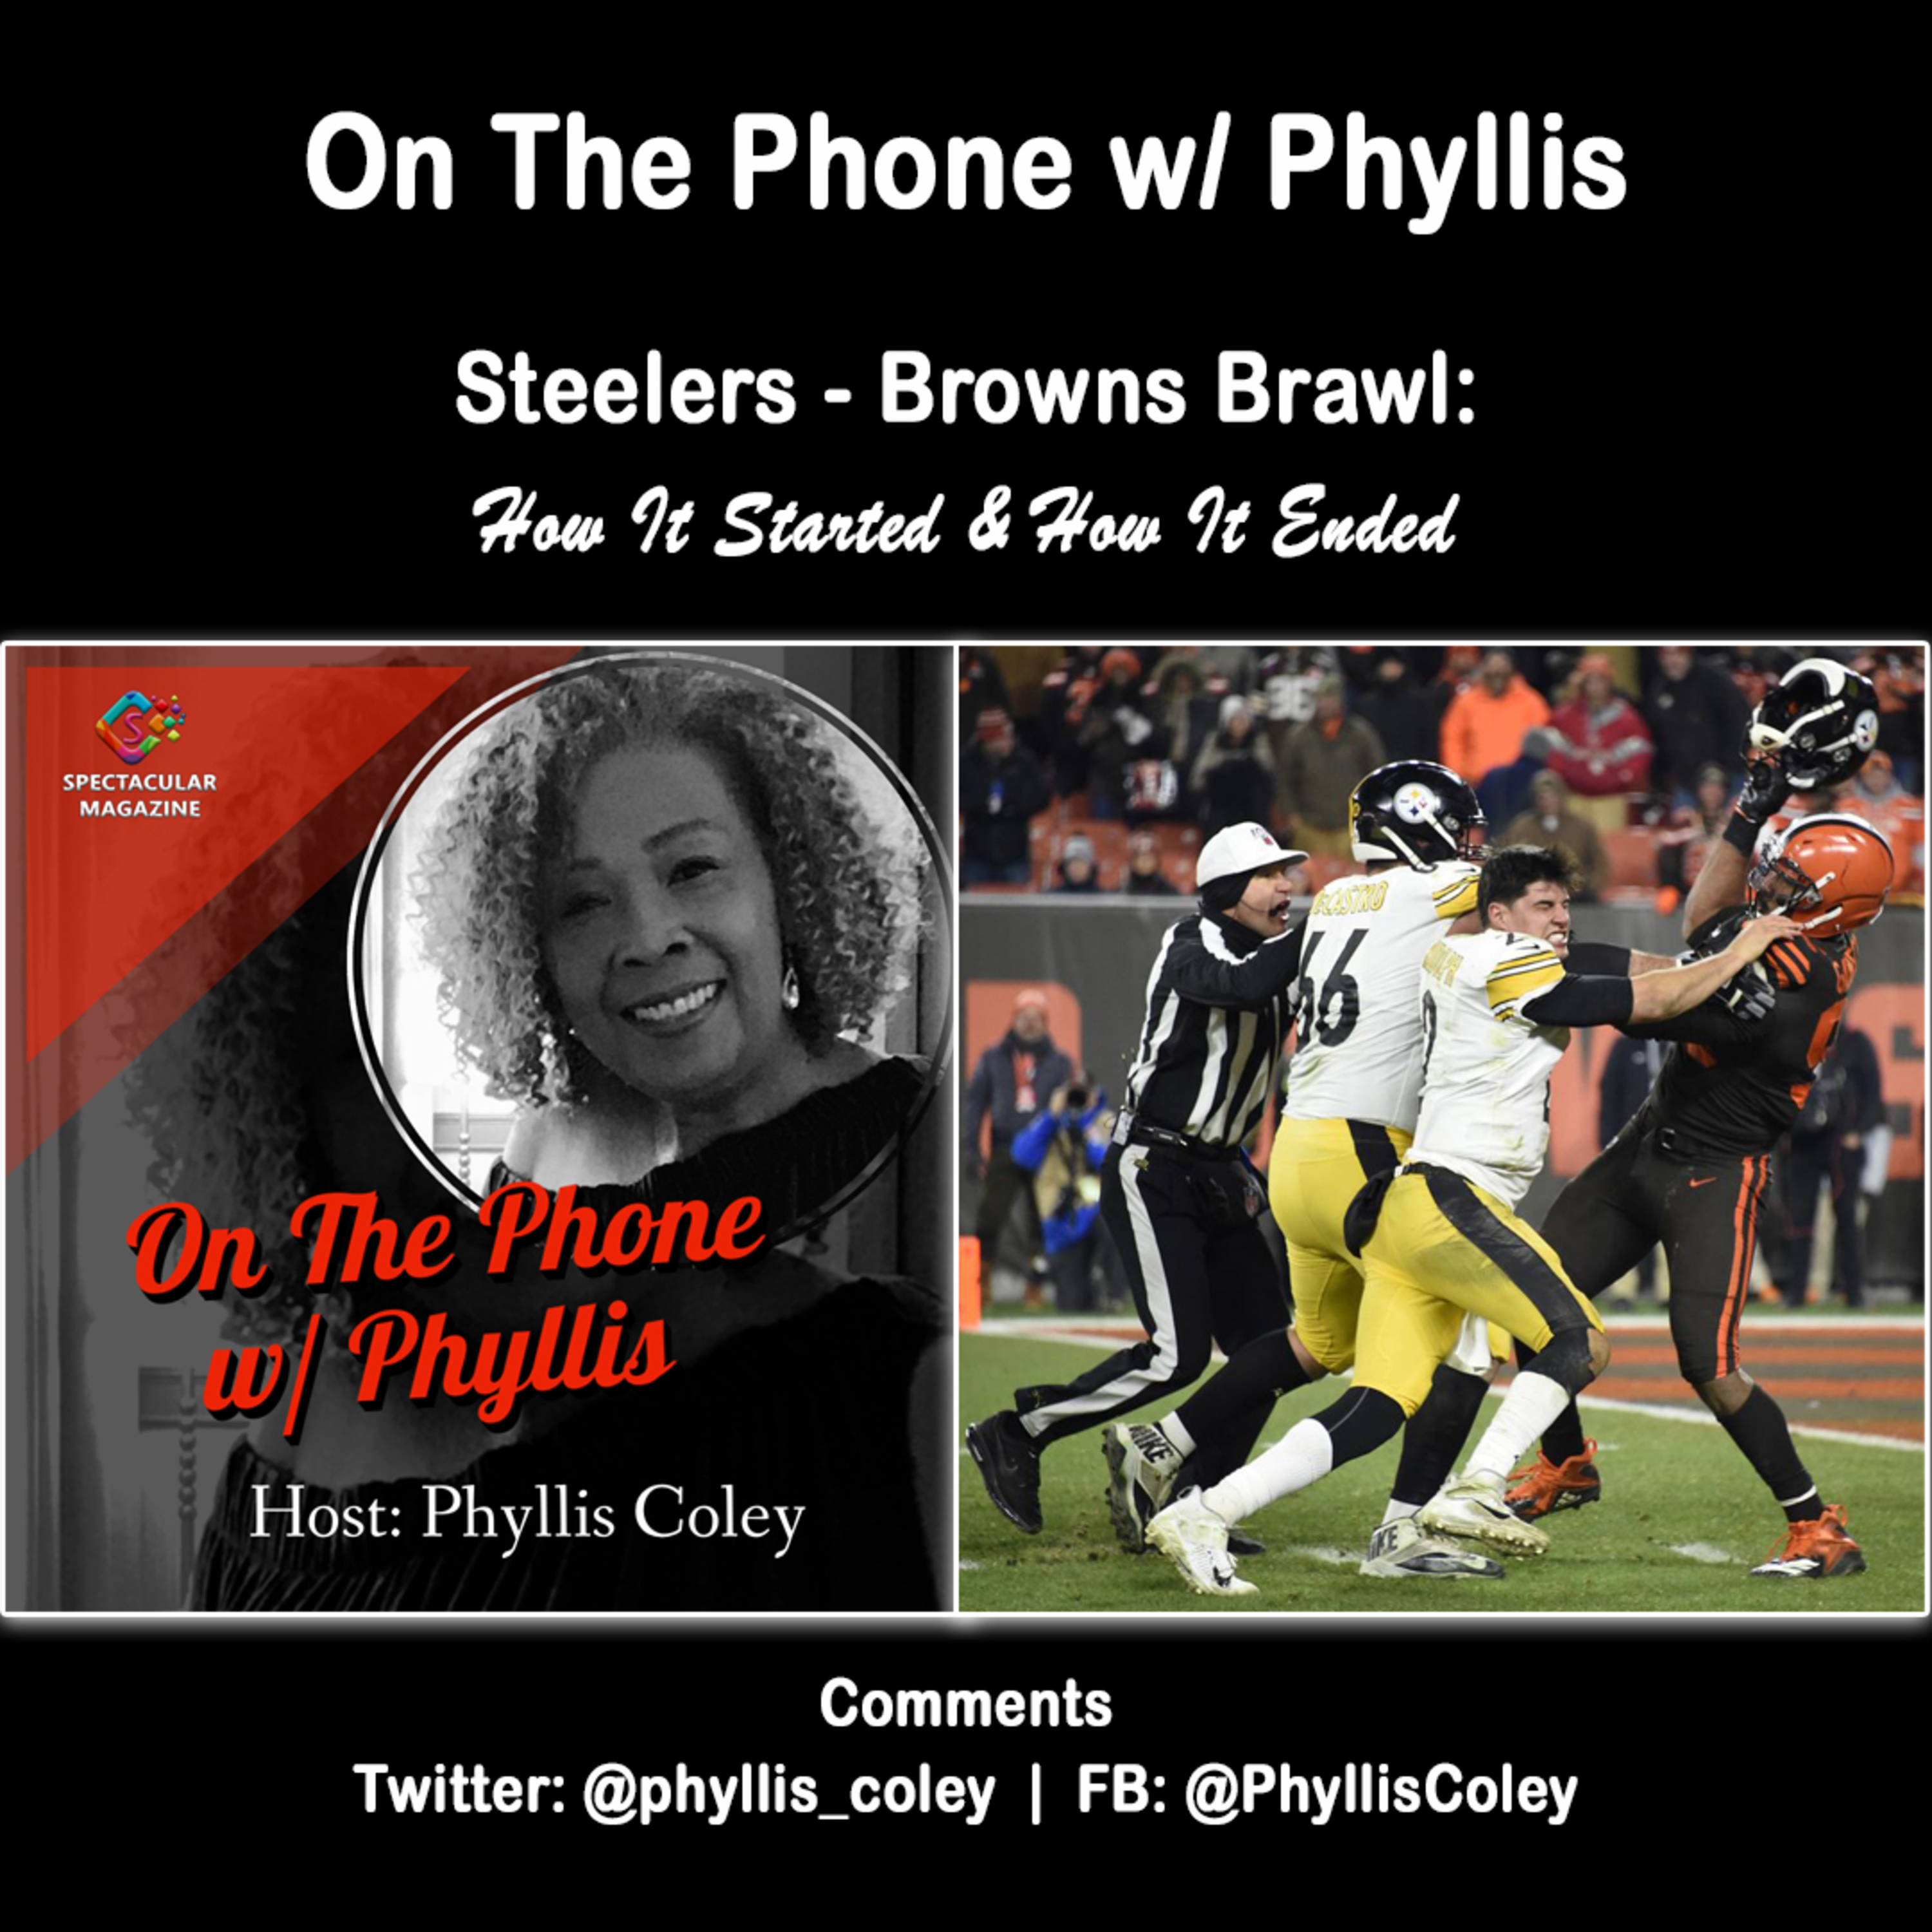 On The Phone w/ Phyllis: Steelers - Browns Brawl